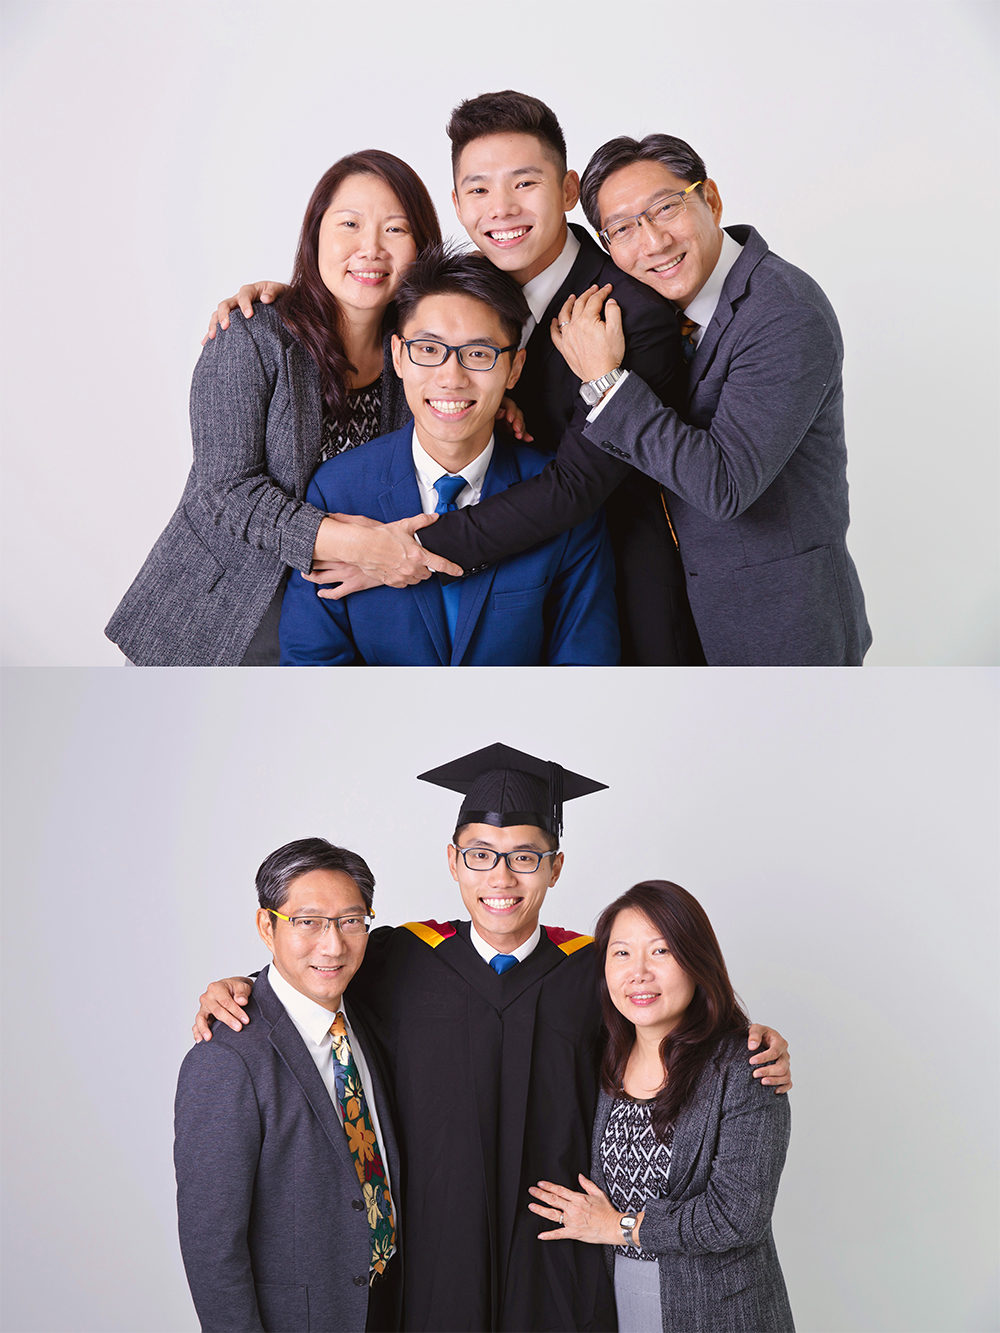 Graduation and Family Photo